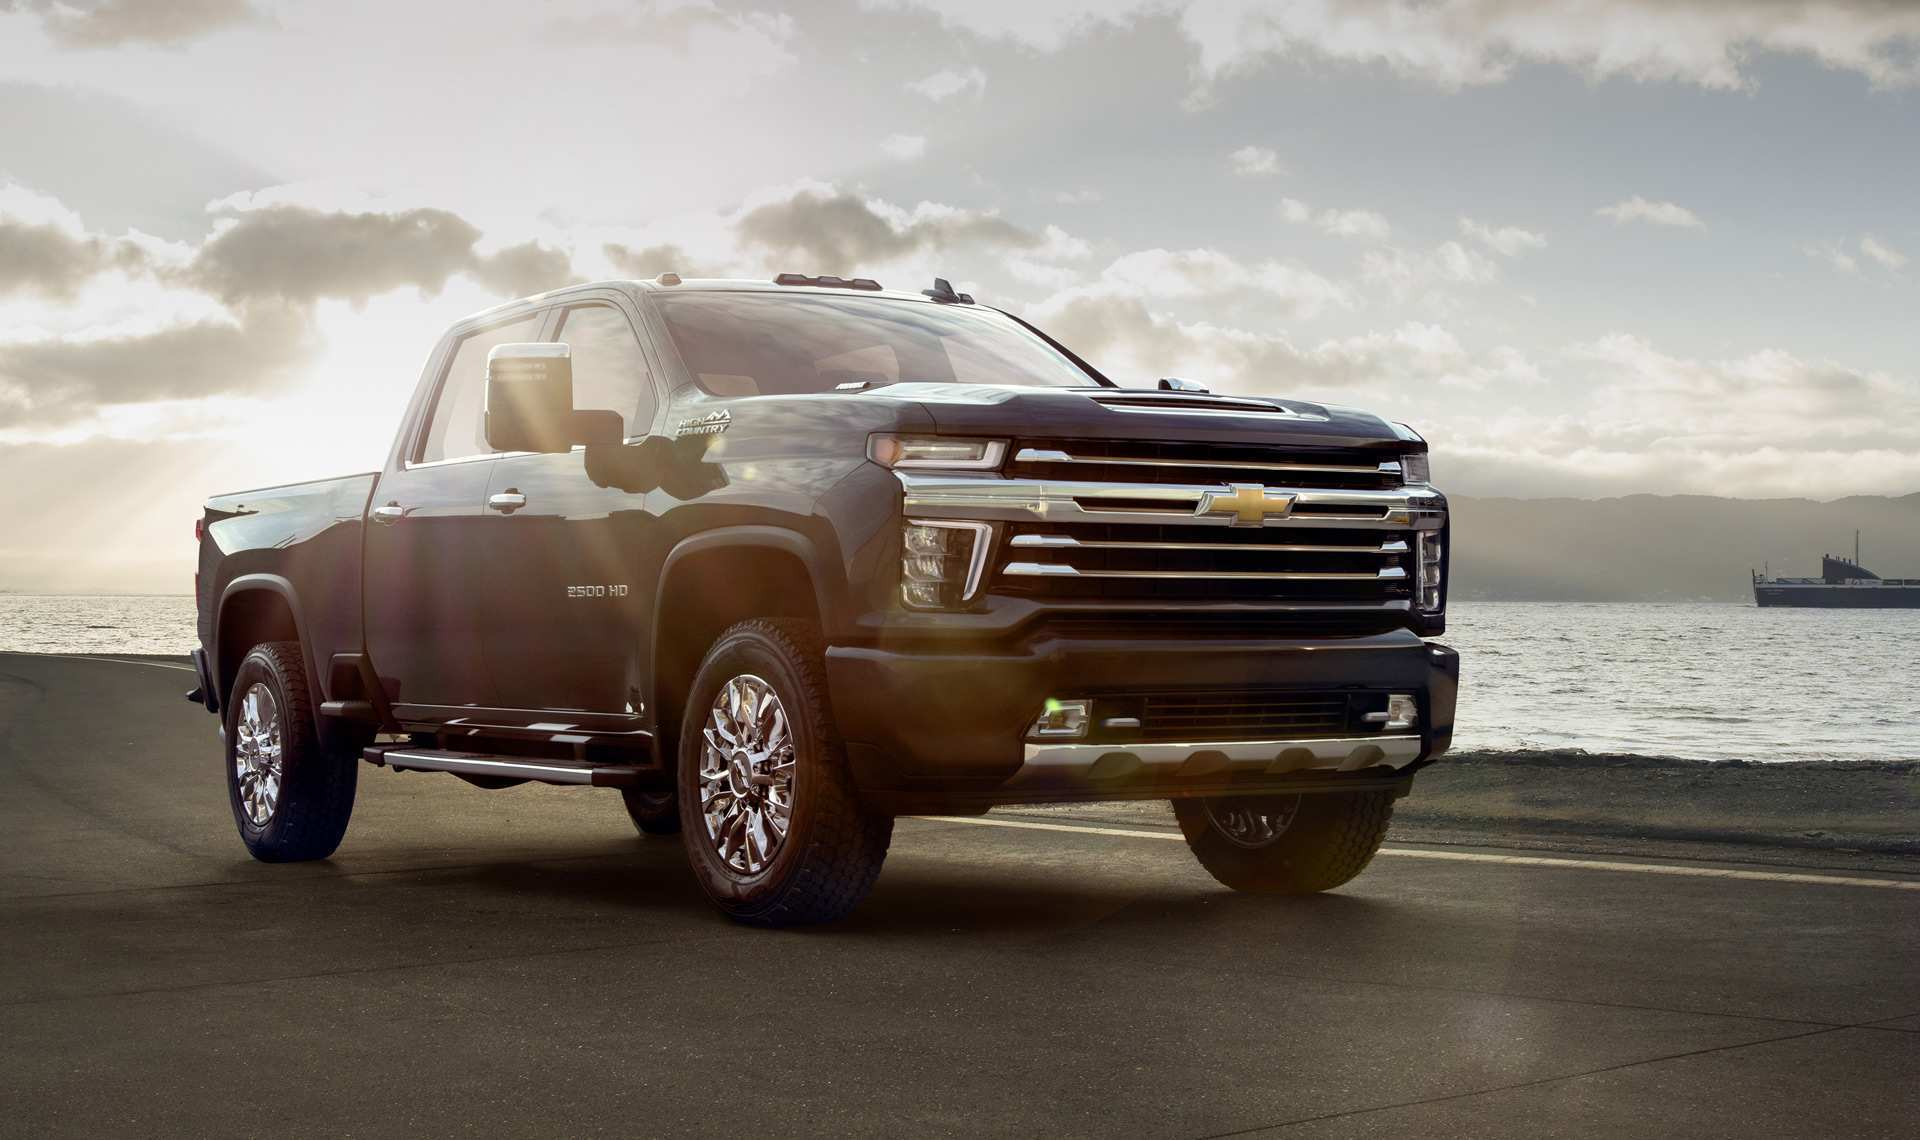 45 Concept of 2020 Chevrolet Silverado 2500 Rumors by 2020 Chevrolet Silverado 2500